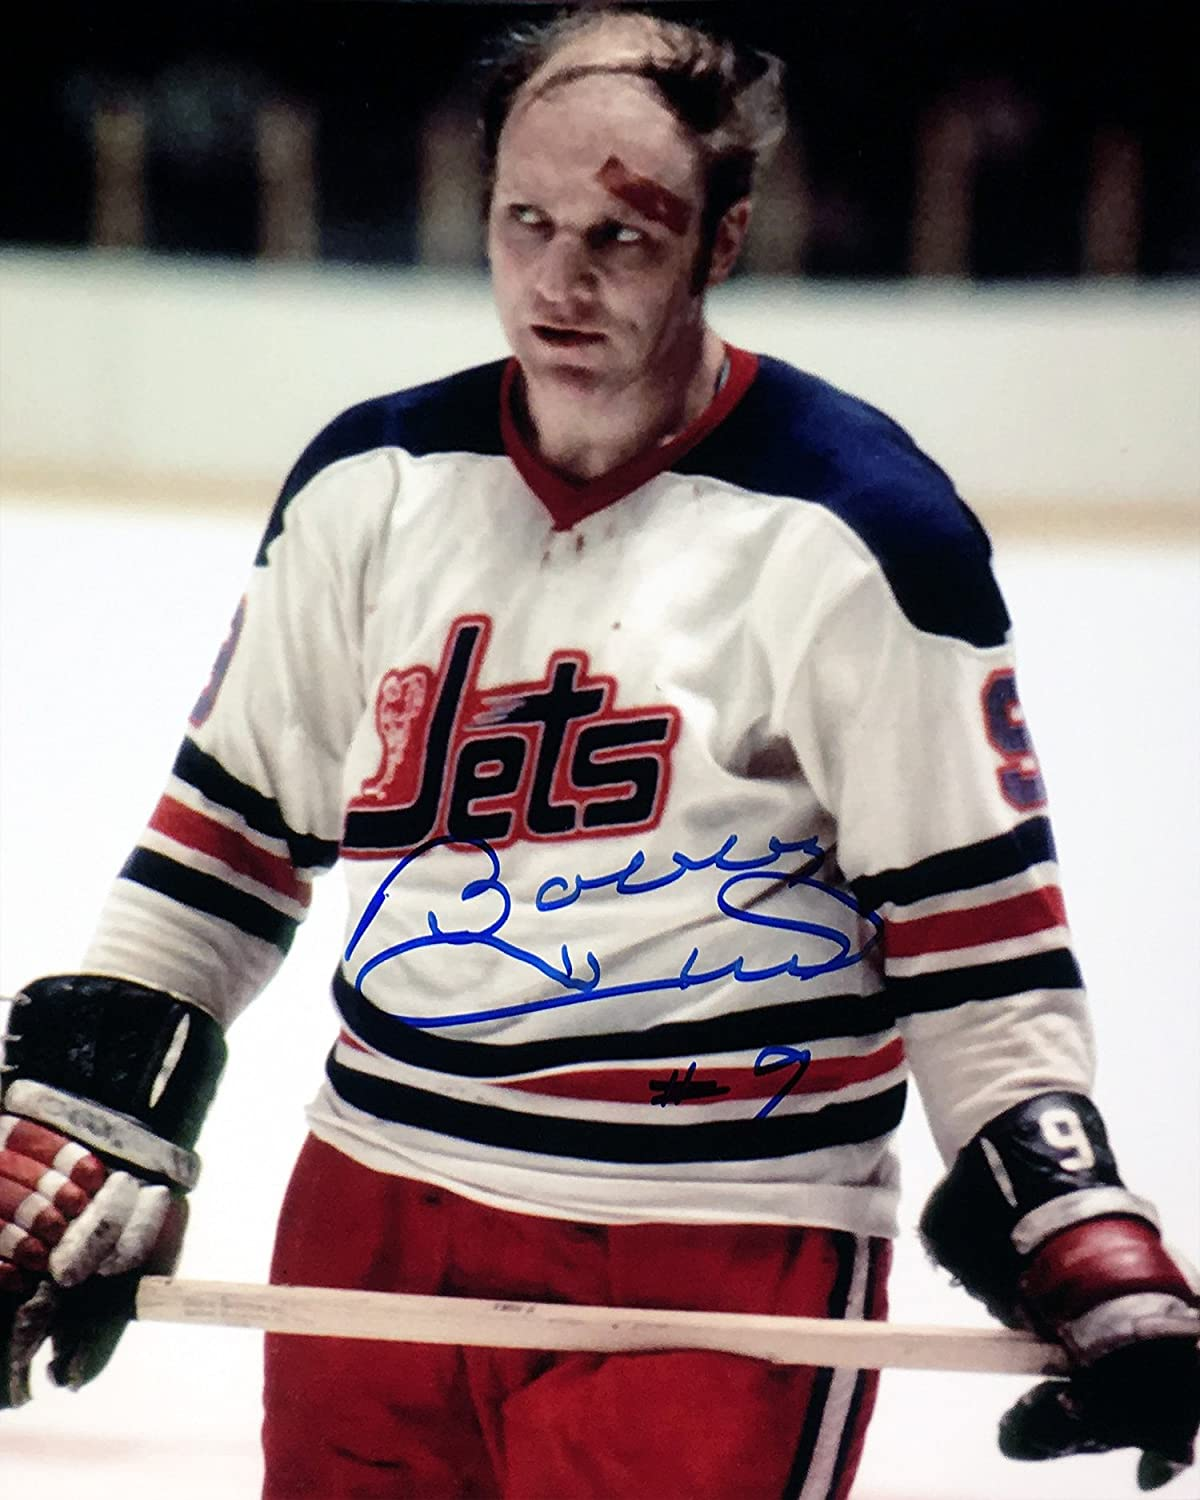 Bobby Hull Autographed 8x10 Photograph (Bloody) - Winnipeg Jets Autograph Authentic